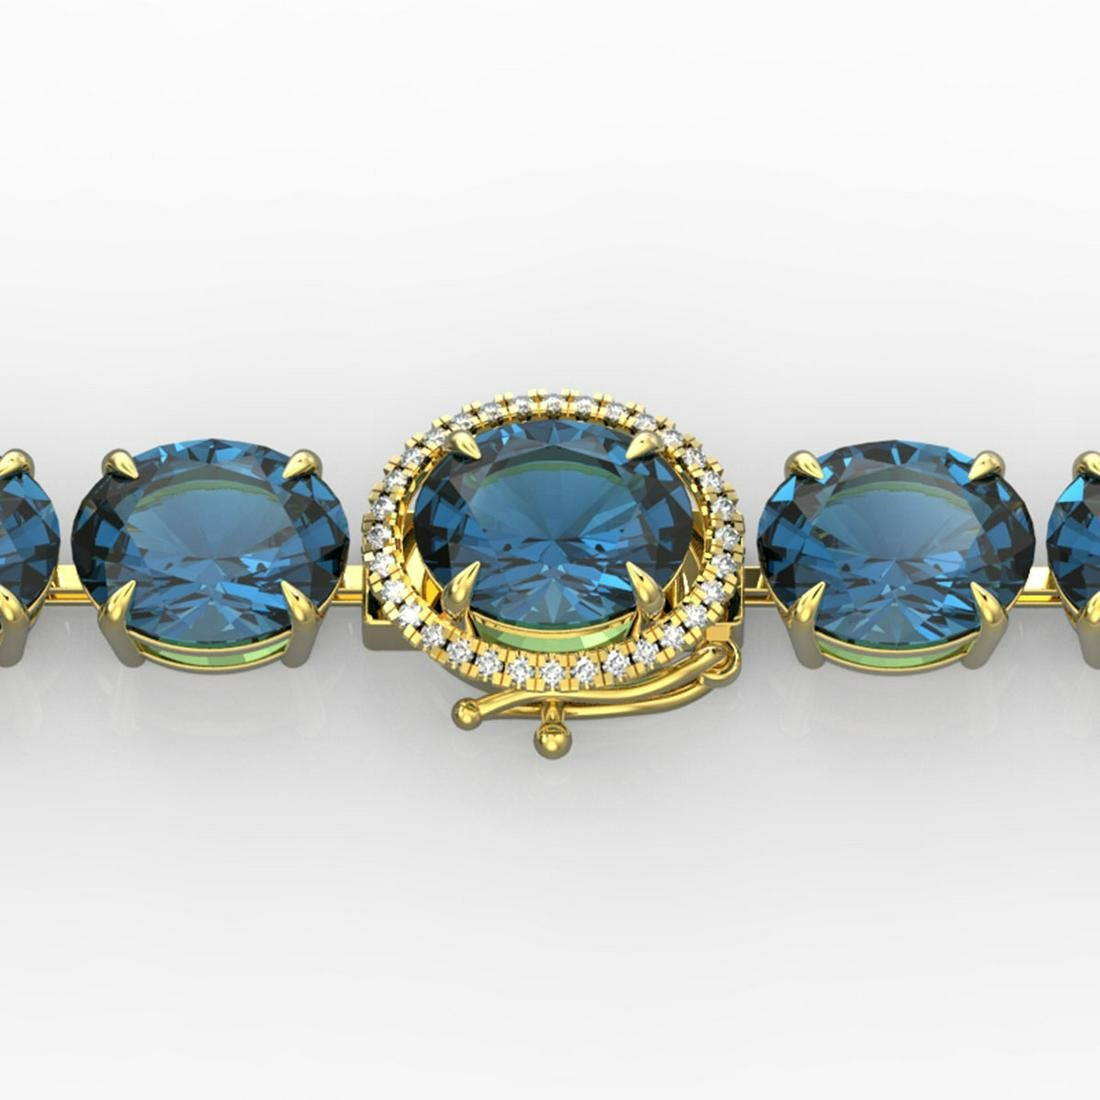 79 ctw London Blue Topaz & Diamond Bracelet 14K Yellow